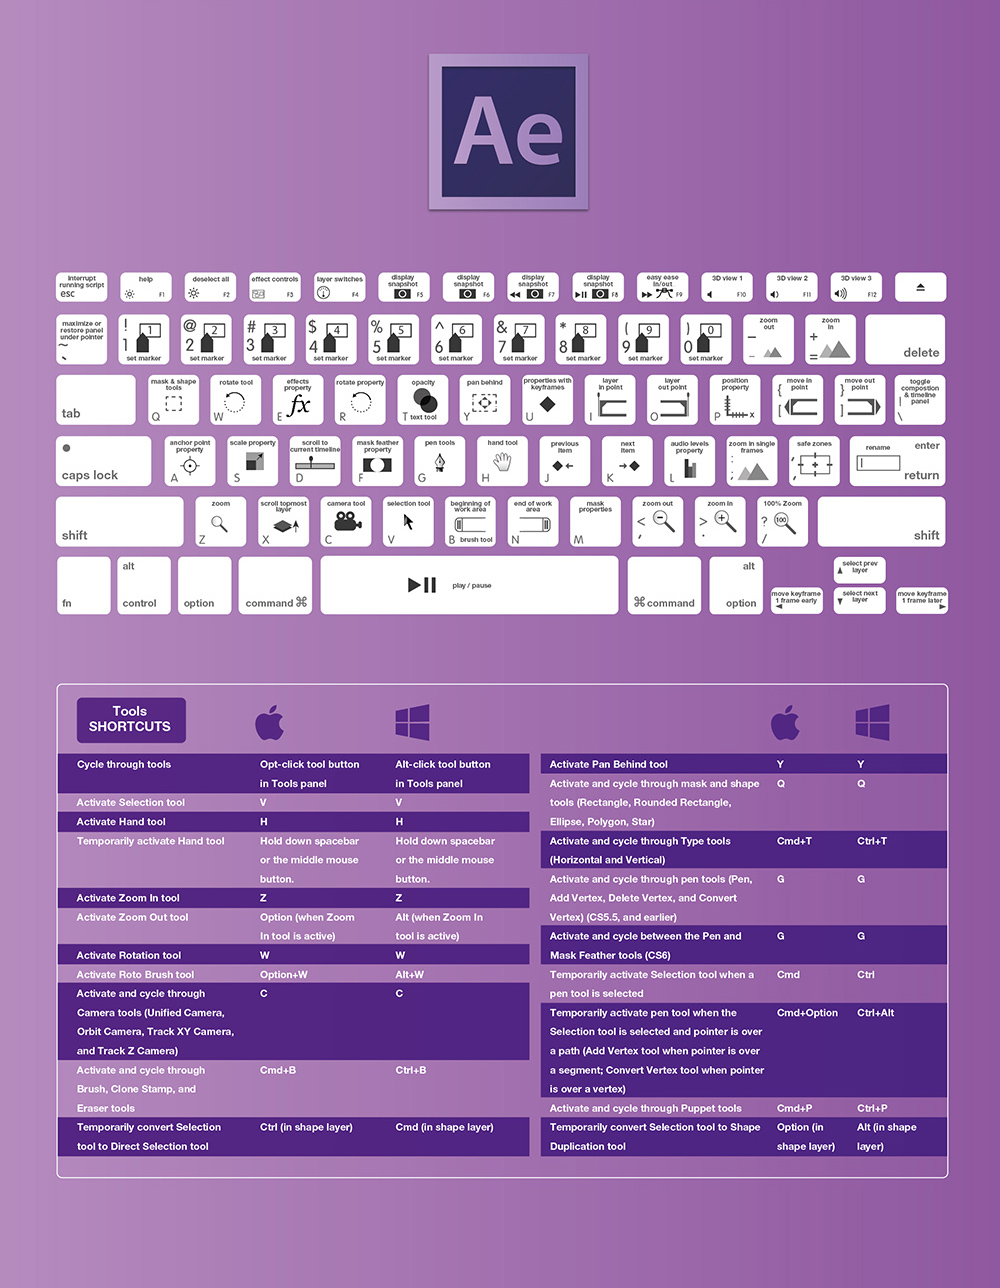 The Complete Adobe After Effects CC Keyboard Shortcuts For Designers Guide 2015